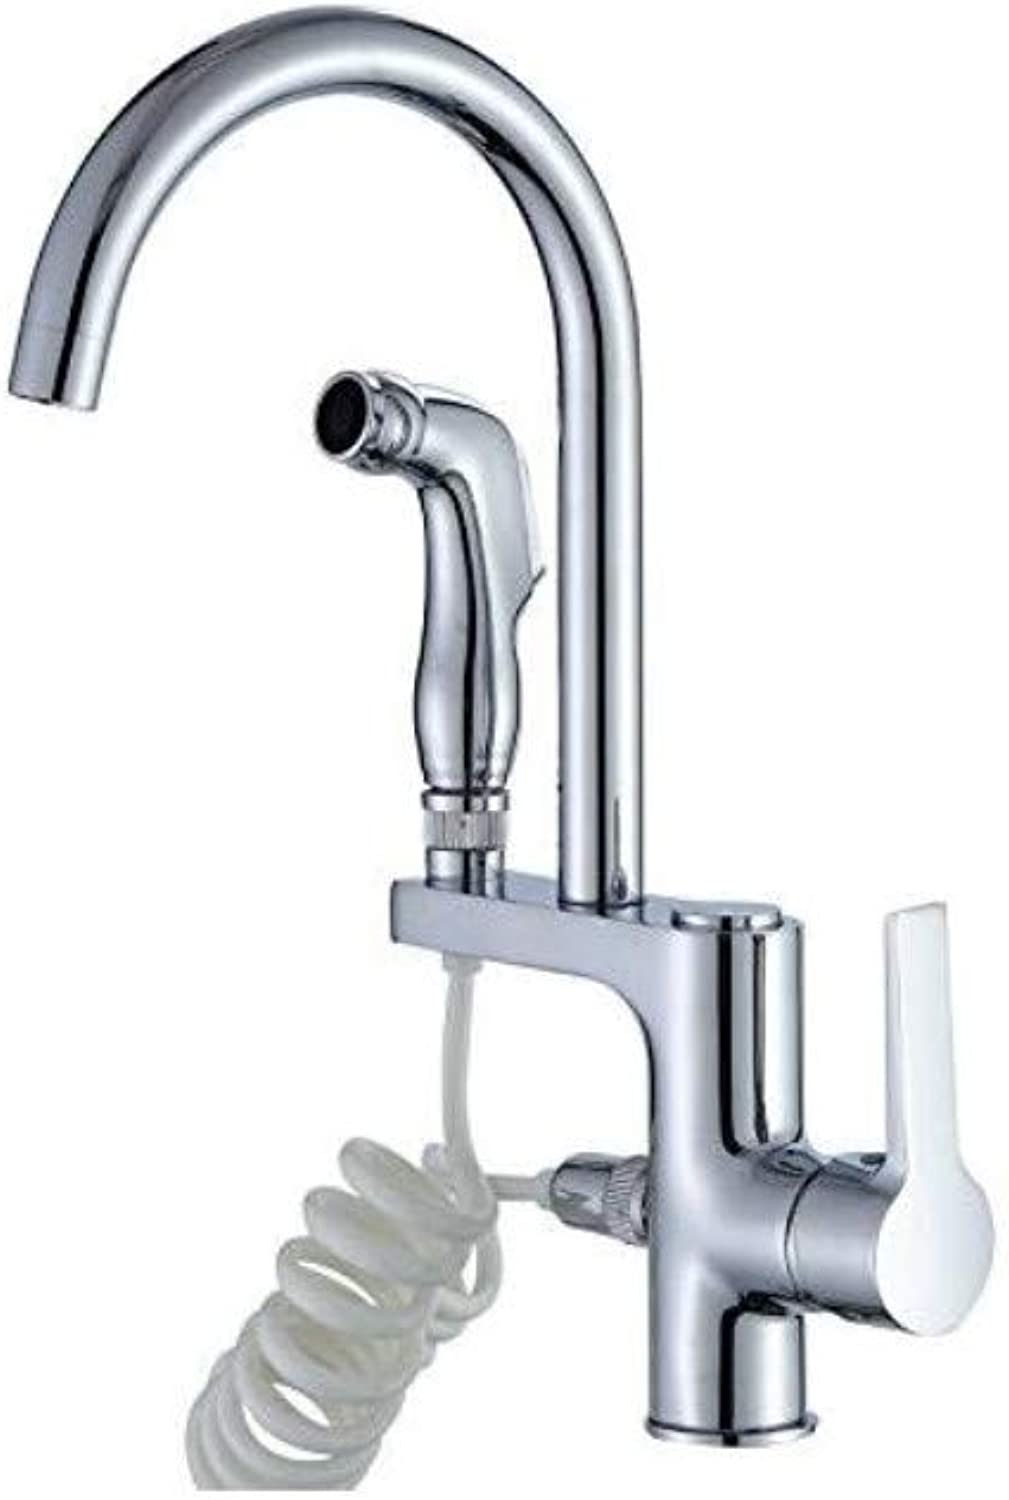 Taps Kitchen Sink Antique Kitchen Sink Mixer Tap The Multi-Purpose Copper Kitchen Faucet Hot and Cold Wash